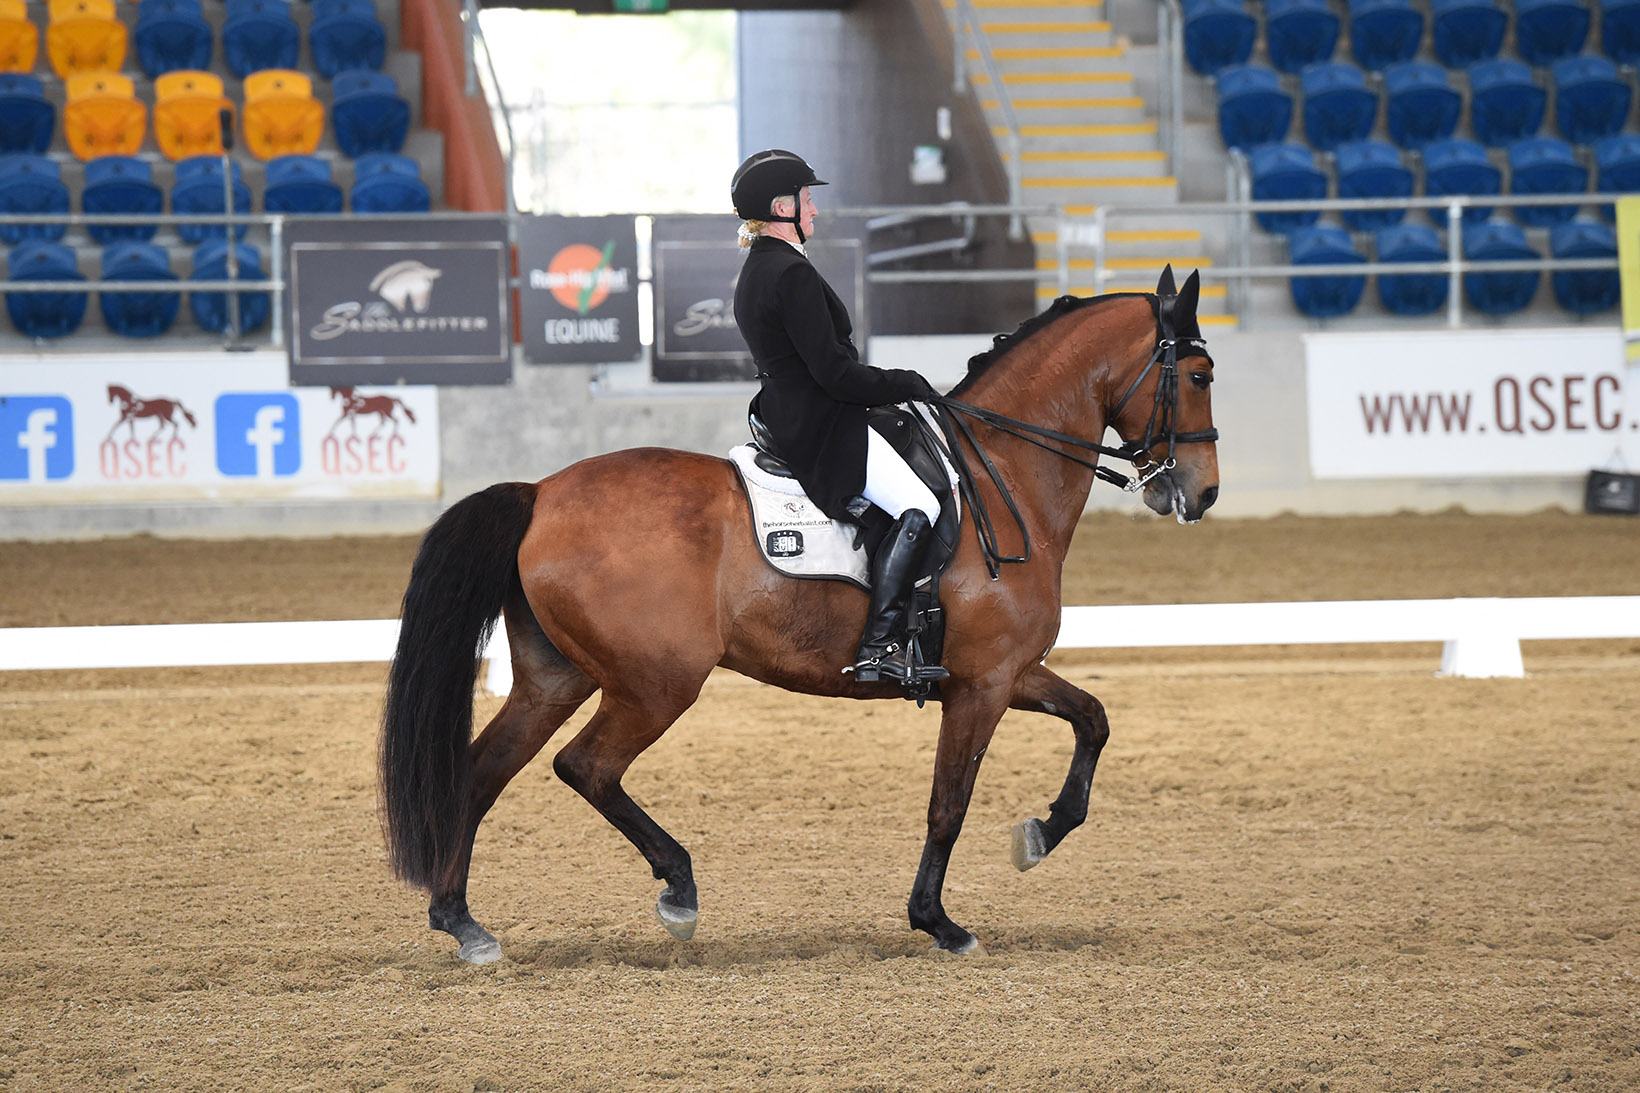 Dressage horse showing passage: A Spiderbite and Sally at the QLD State Dressage Championships 2019. Photo: Oz Shotz